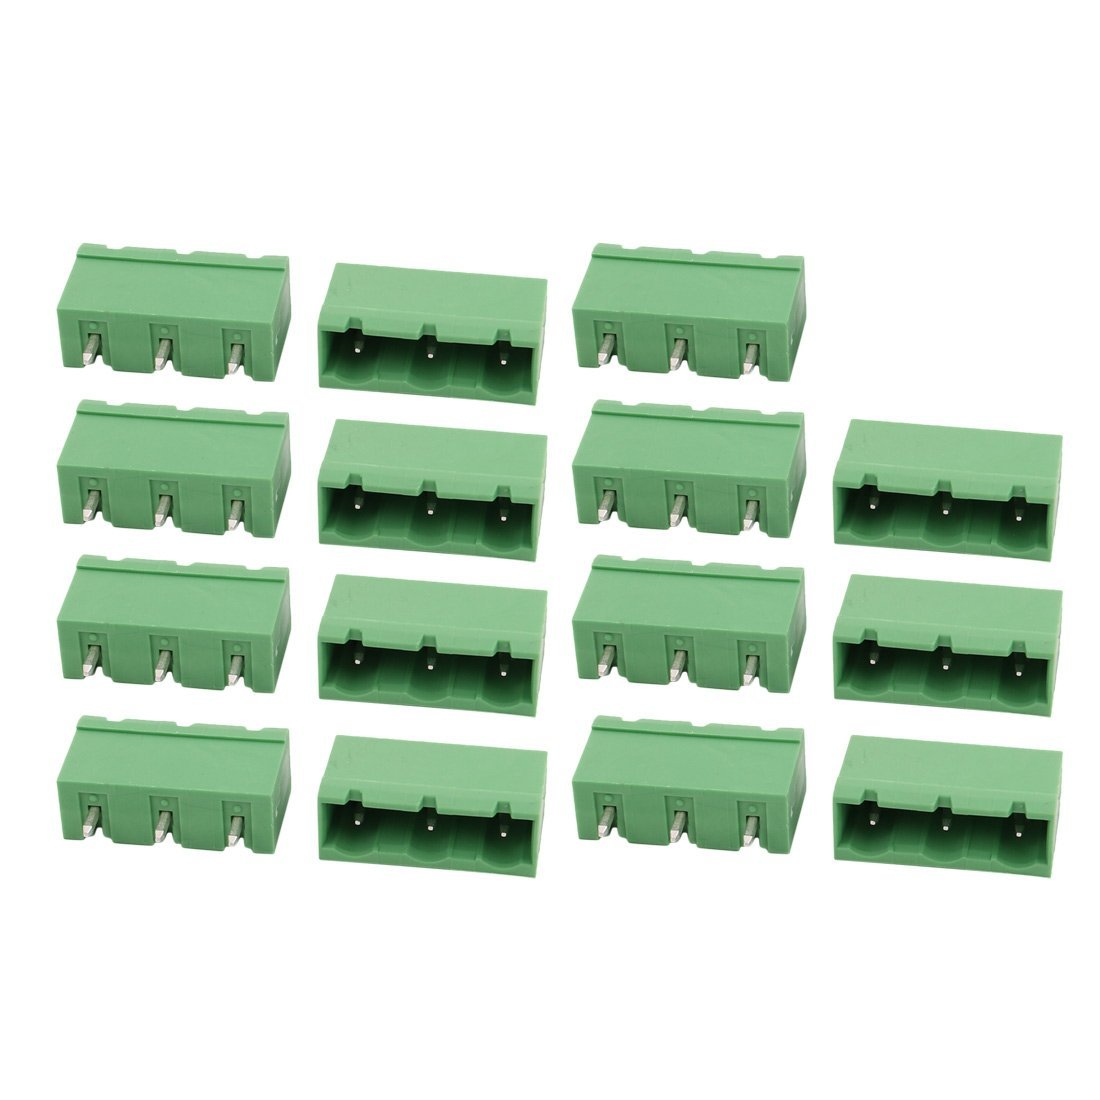 uxcell 15Pcs LZ1V 7.62mm/0.3inch Pitch 3P PCB Terminal Block Wire Connection